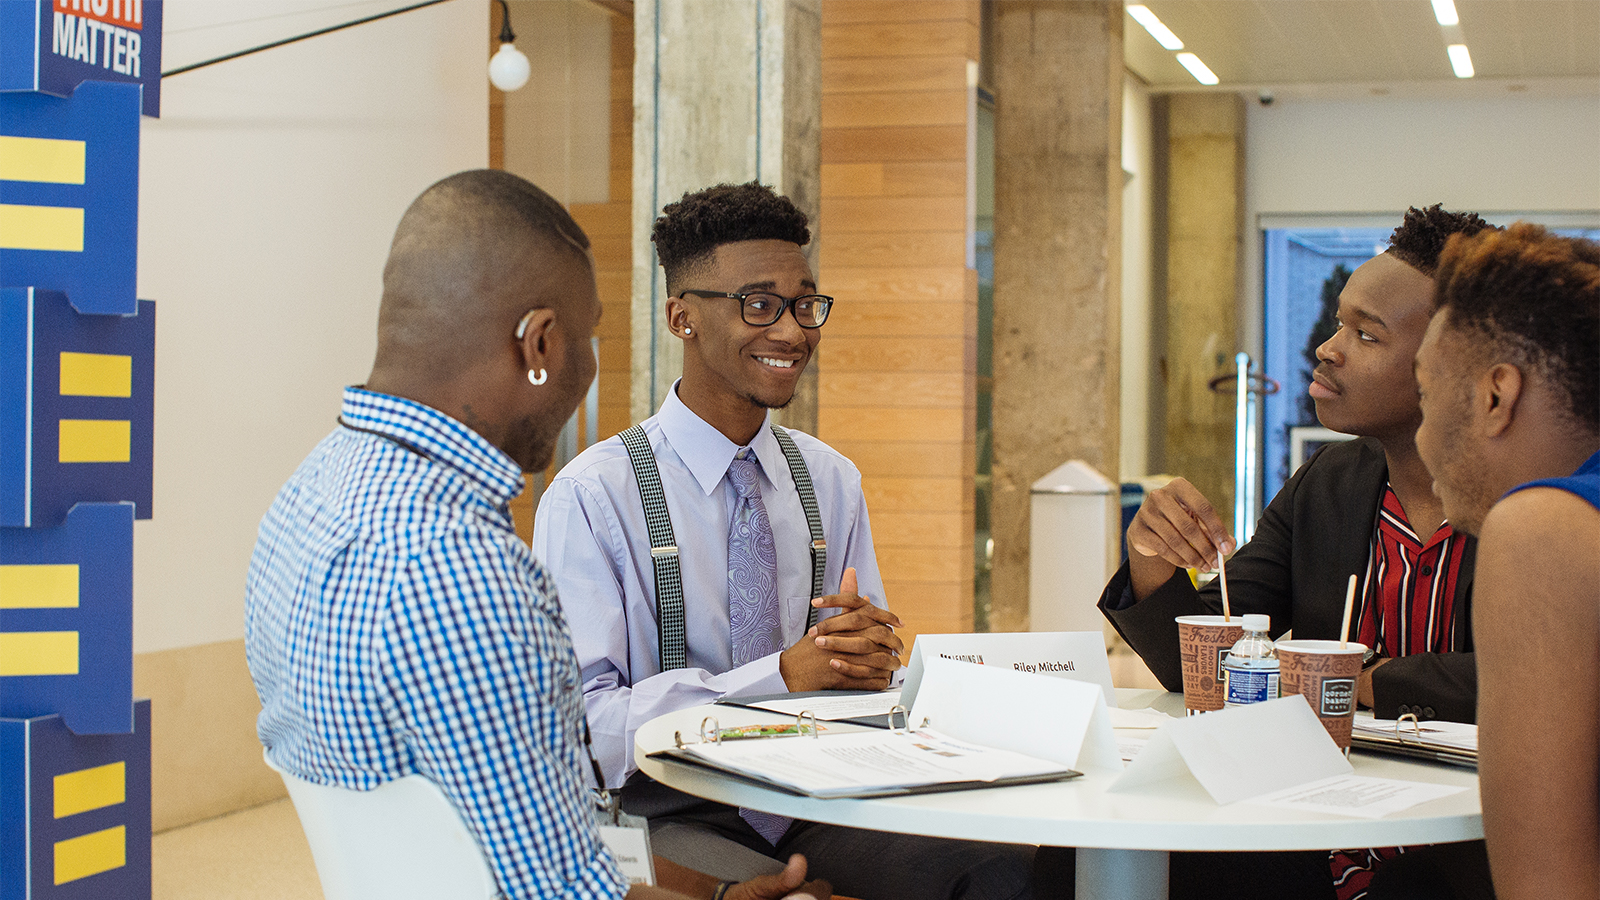 Empowering HBCU Students to Lead and Create Change